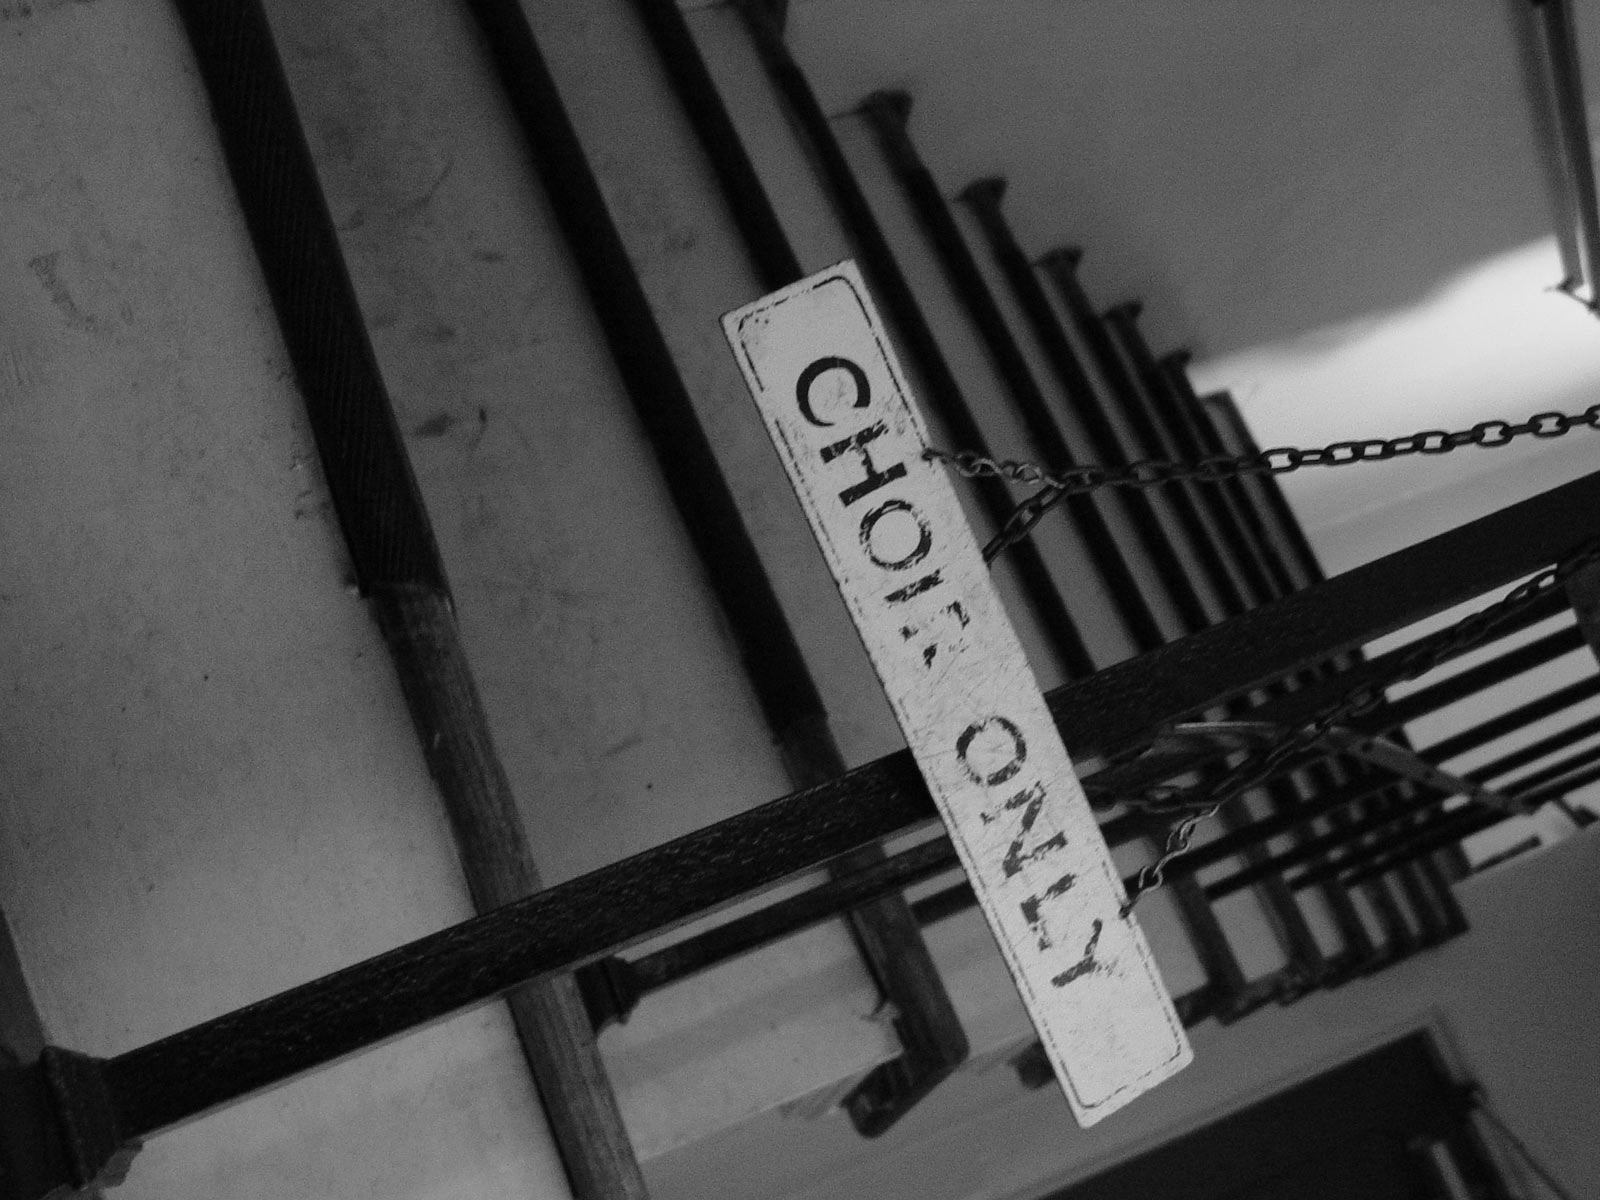 Old sign, Blackandwhite, Chains, Old, Sign, HQ Photo